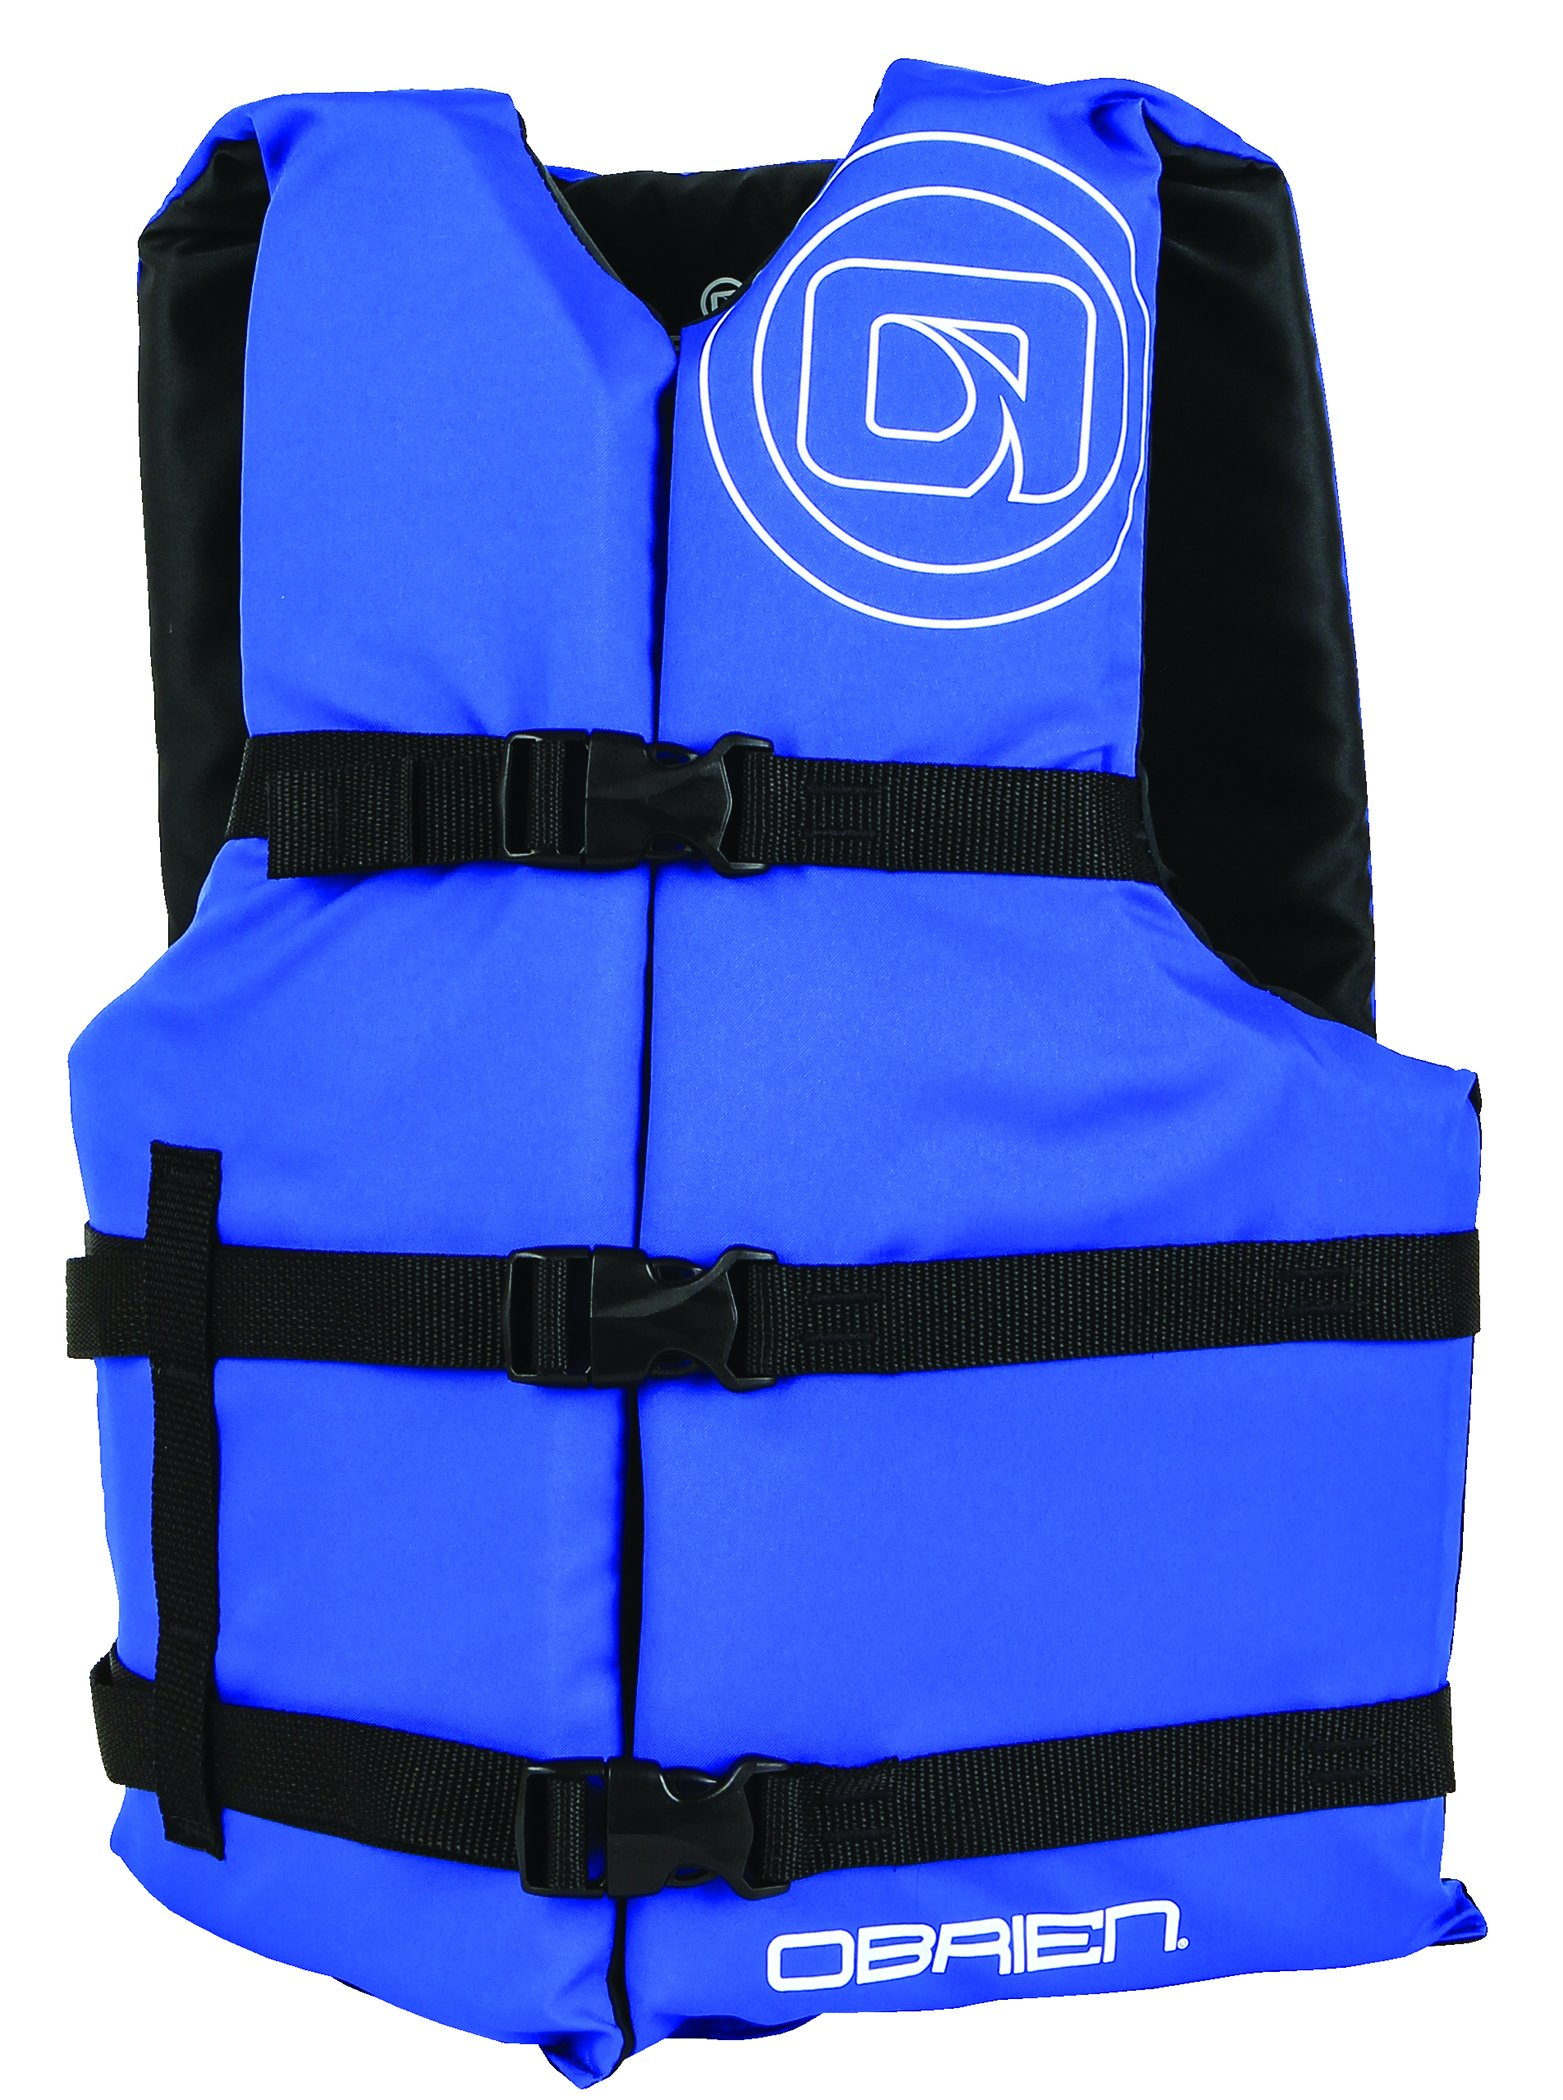 O'Brien Adult 4 Pack Life Vest, Blue by O'Brien